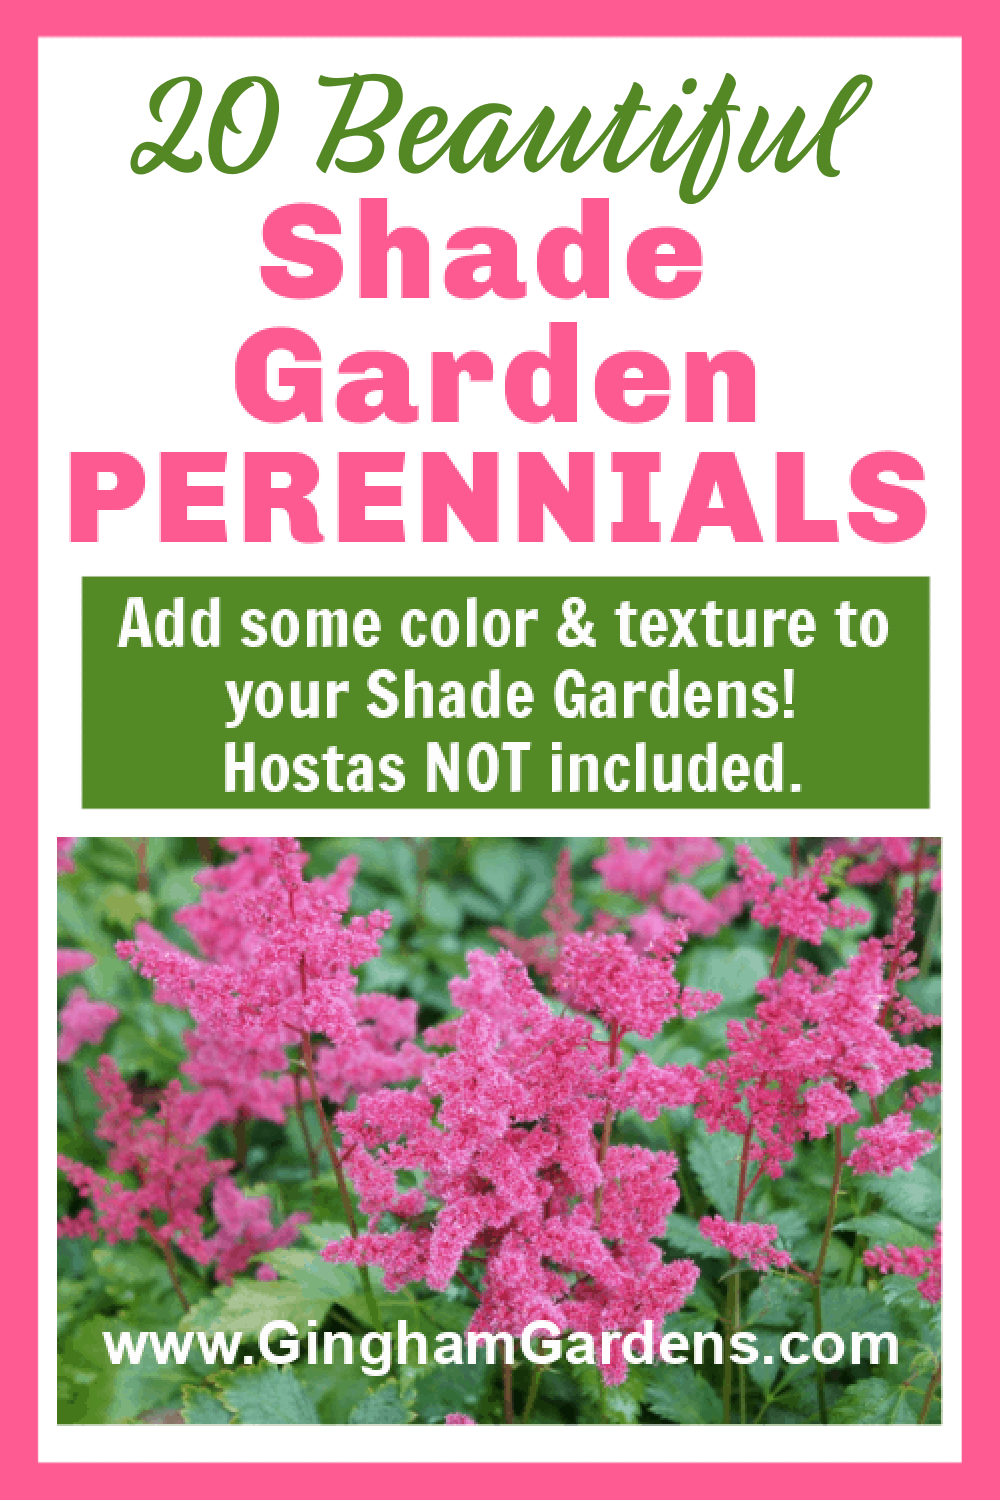 Image of Astilbe with text overlay - 20 Beautiful Shade Garden Perennials